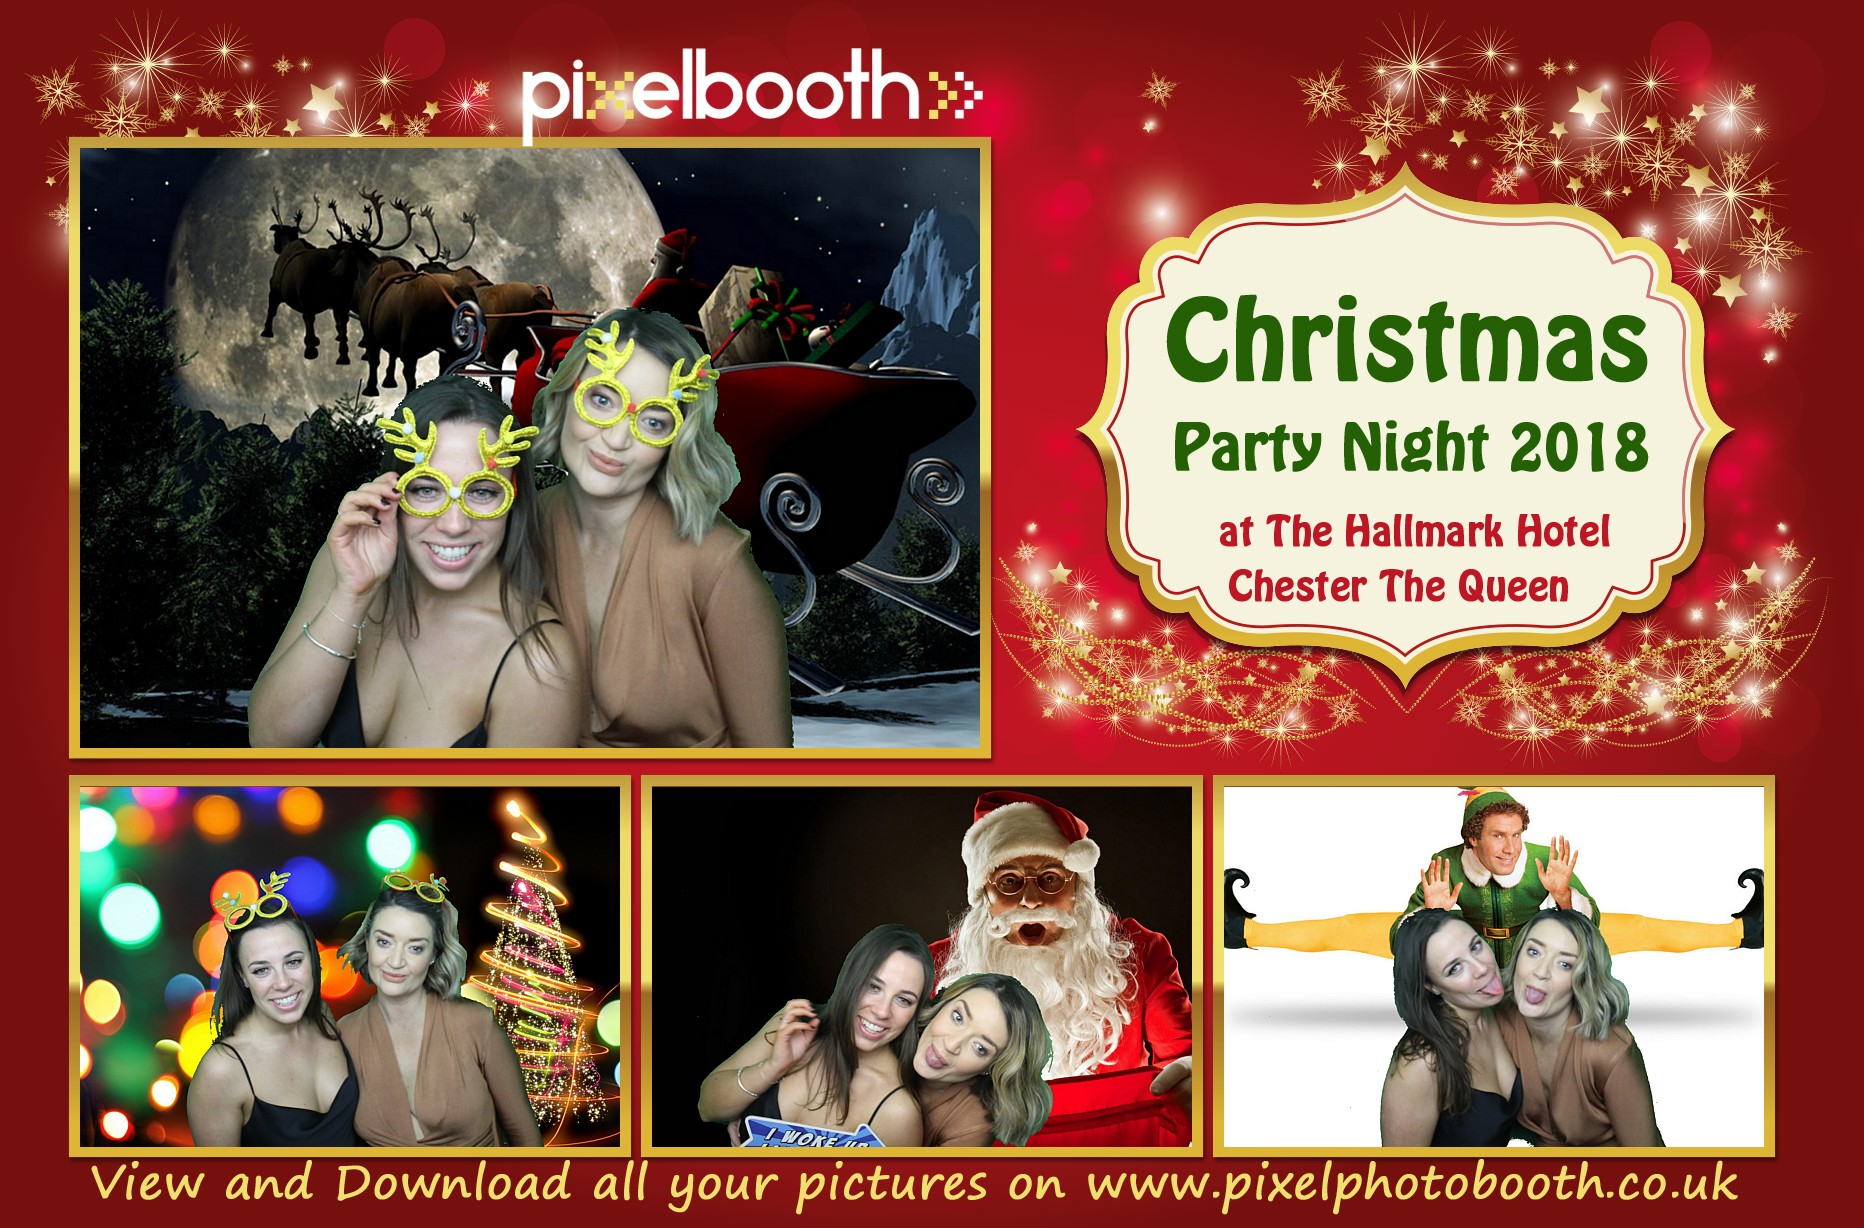 14th Dec 2018: Queen Hotel Christmas Party Night